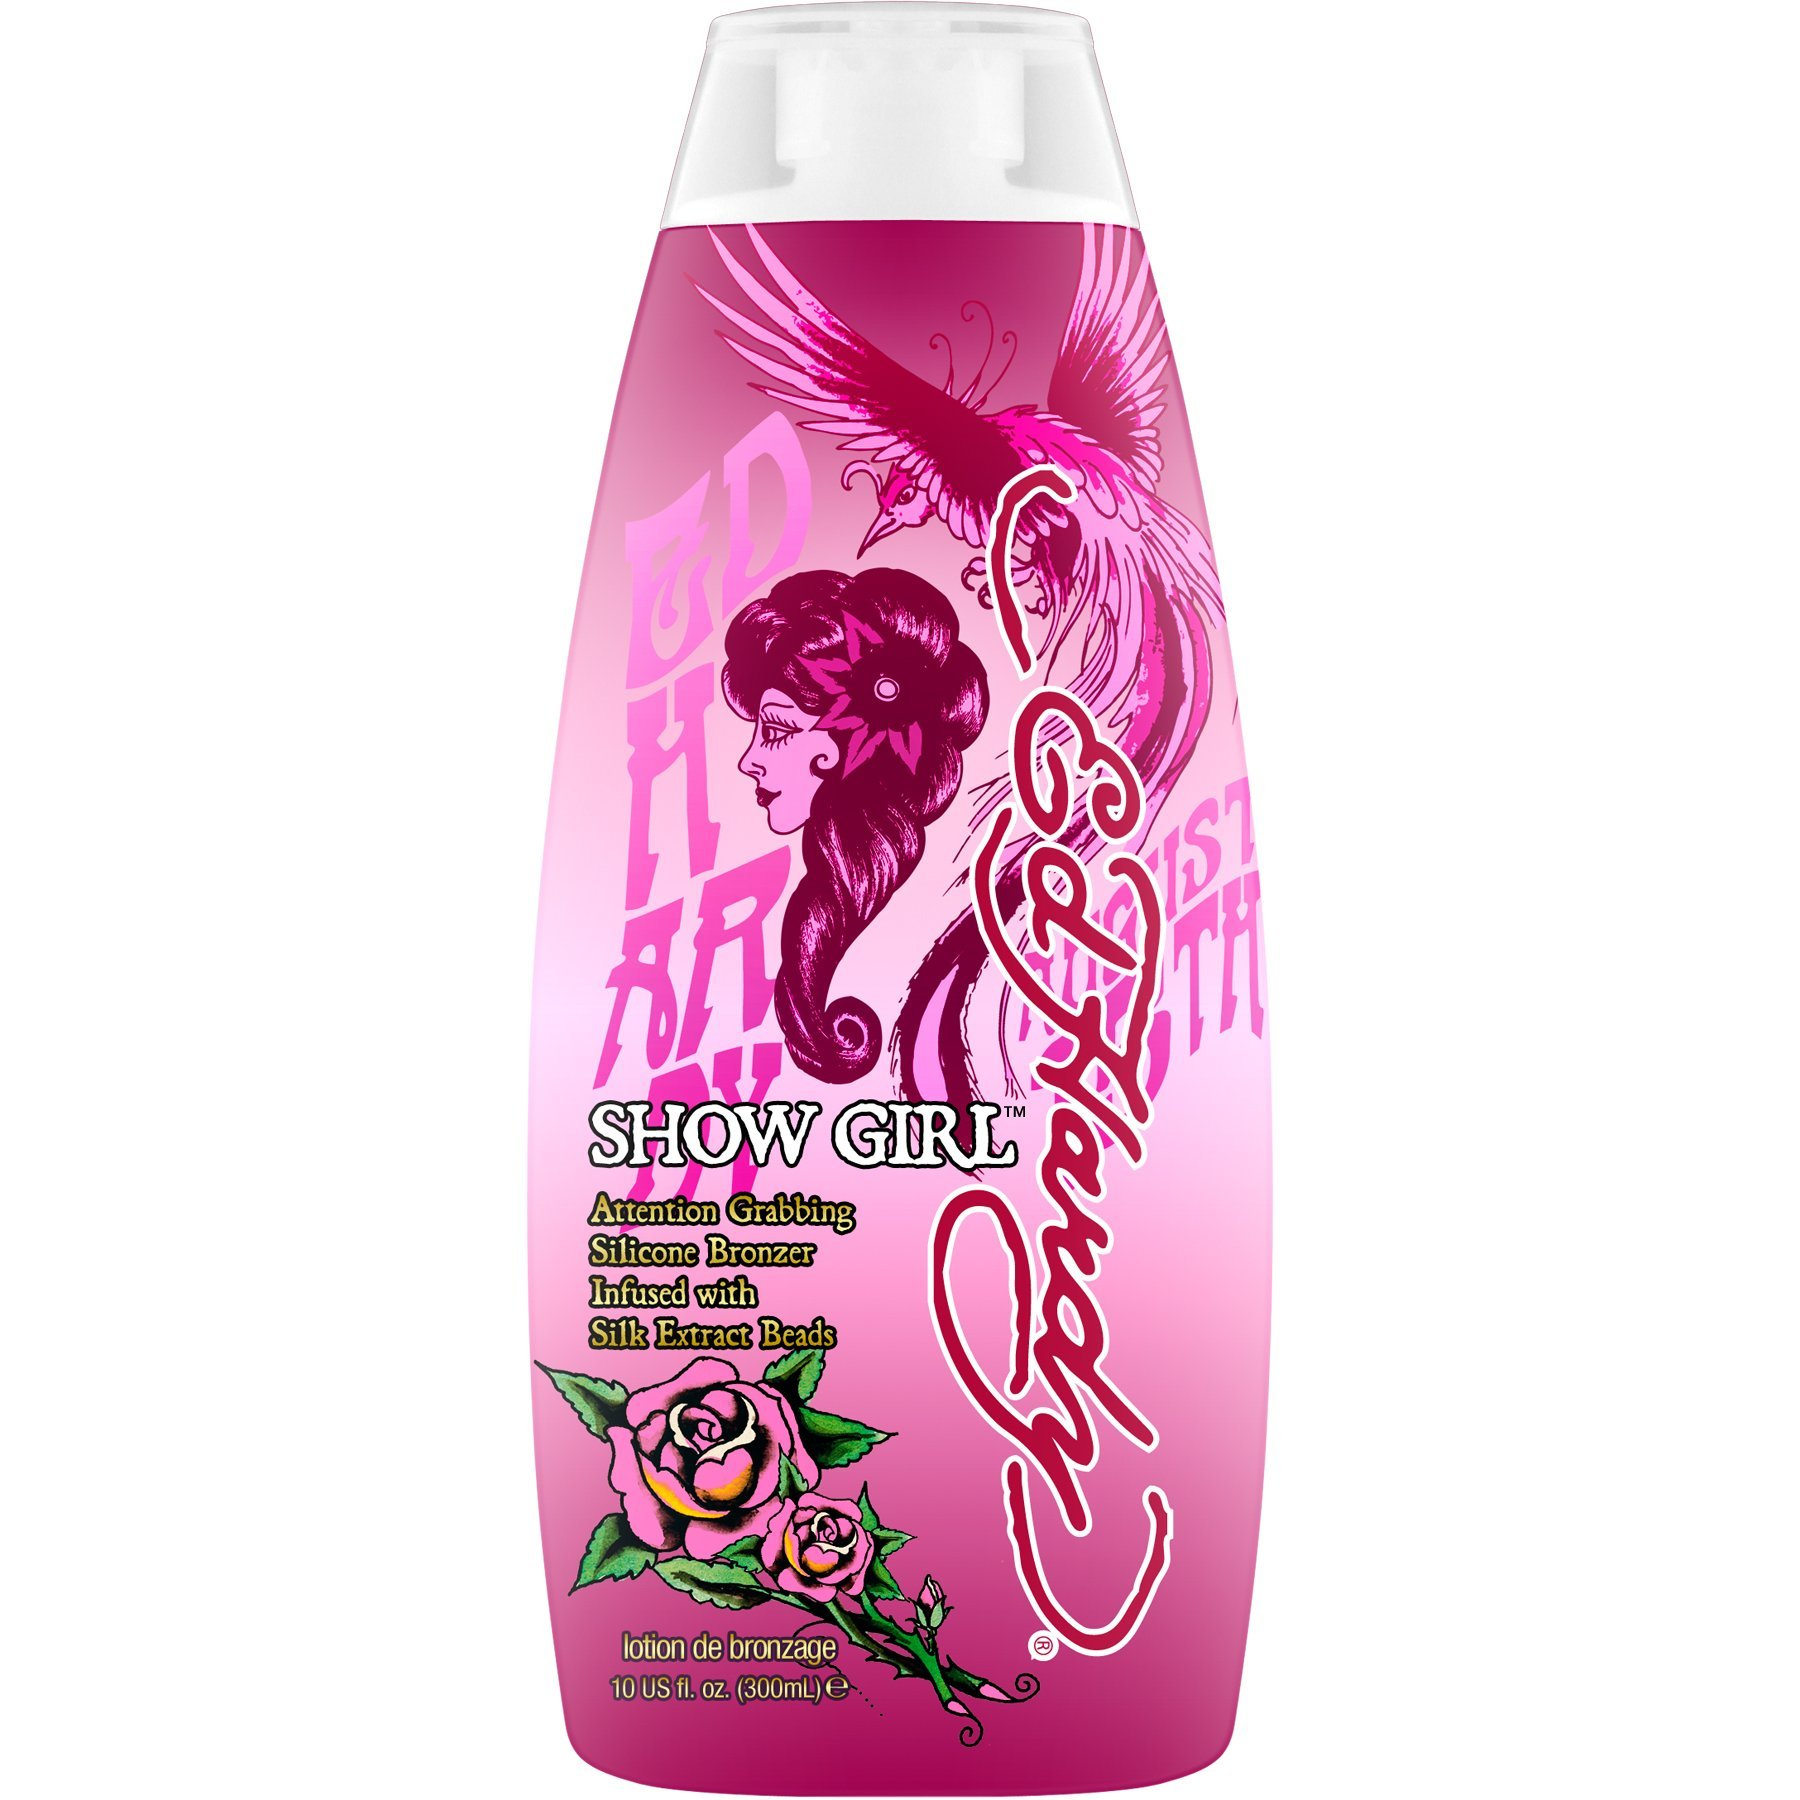 Ed Hardy Show Girl Silicone Bronzers with Silk Extract Beads Tanning Lotion, 10 oz.